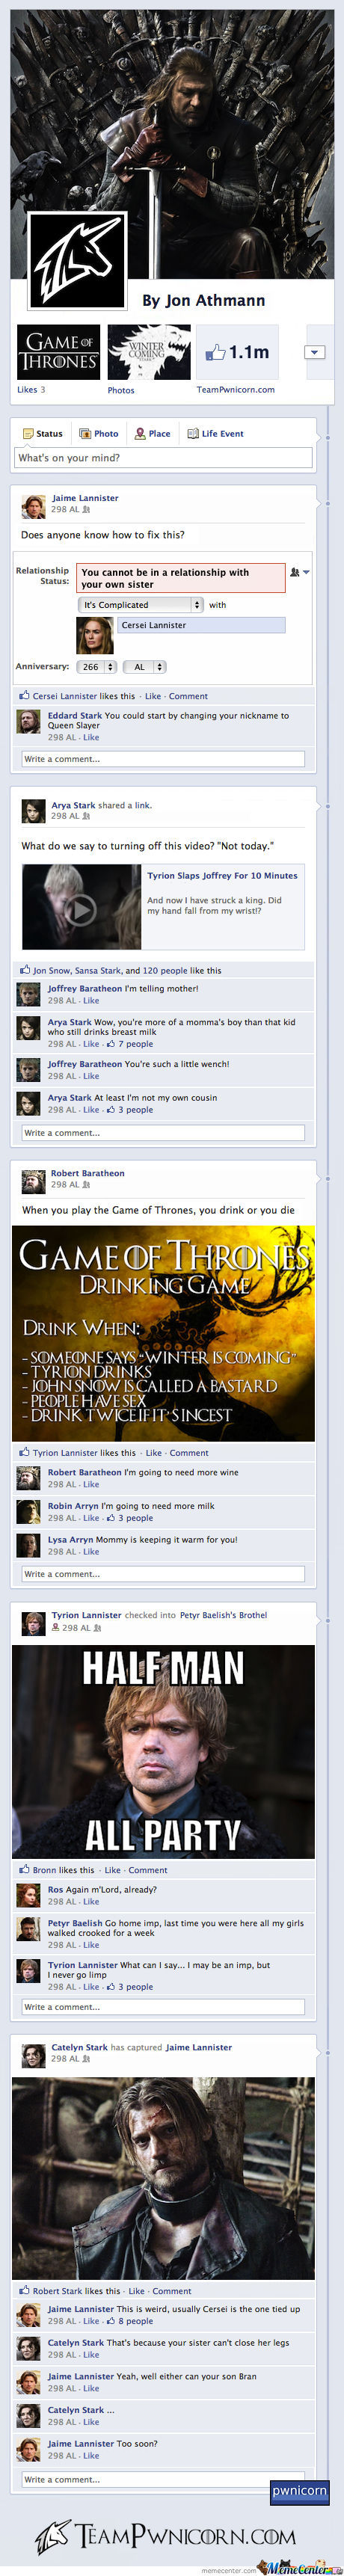 Game Of Thrones On Facebook By Team Pwnicorn